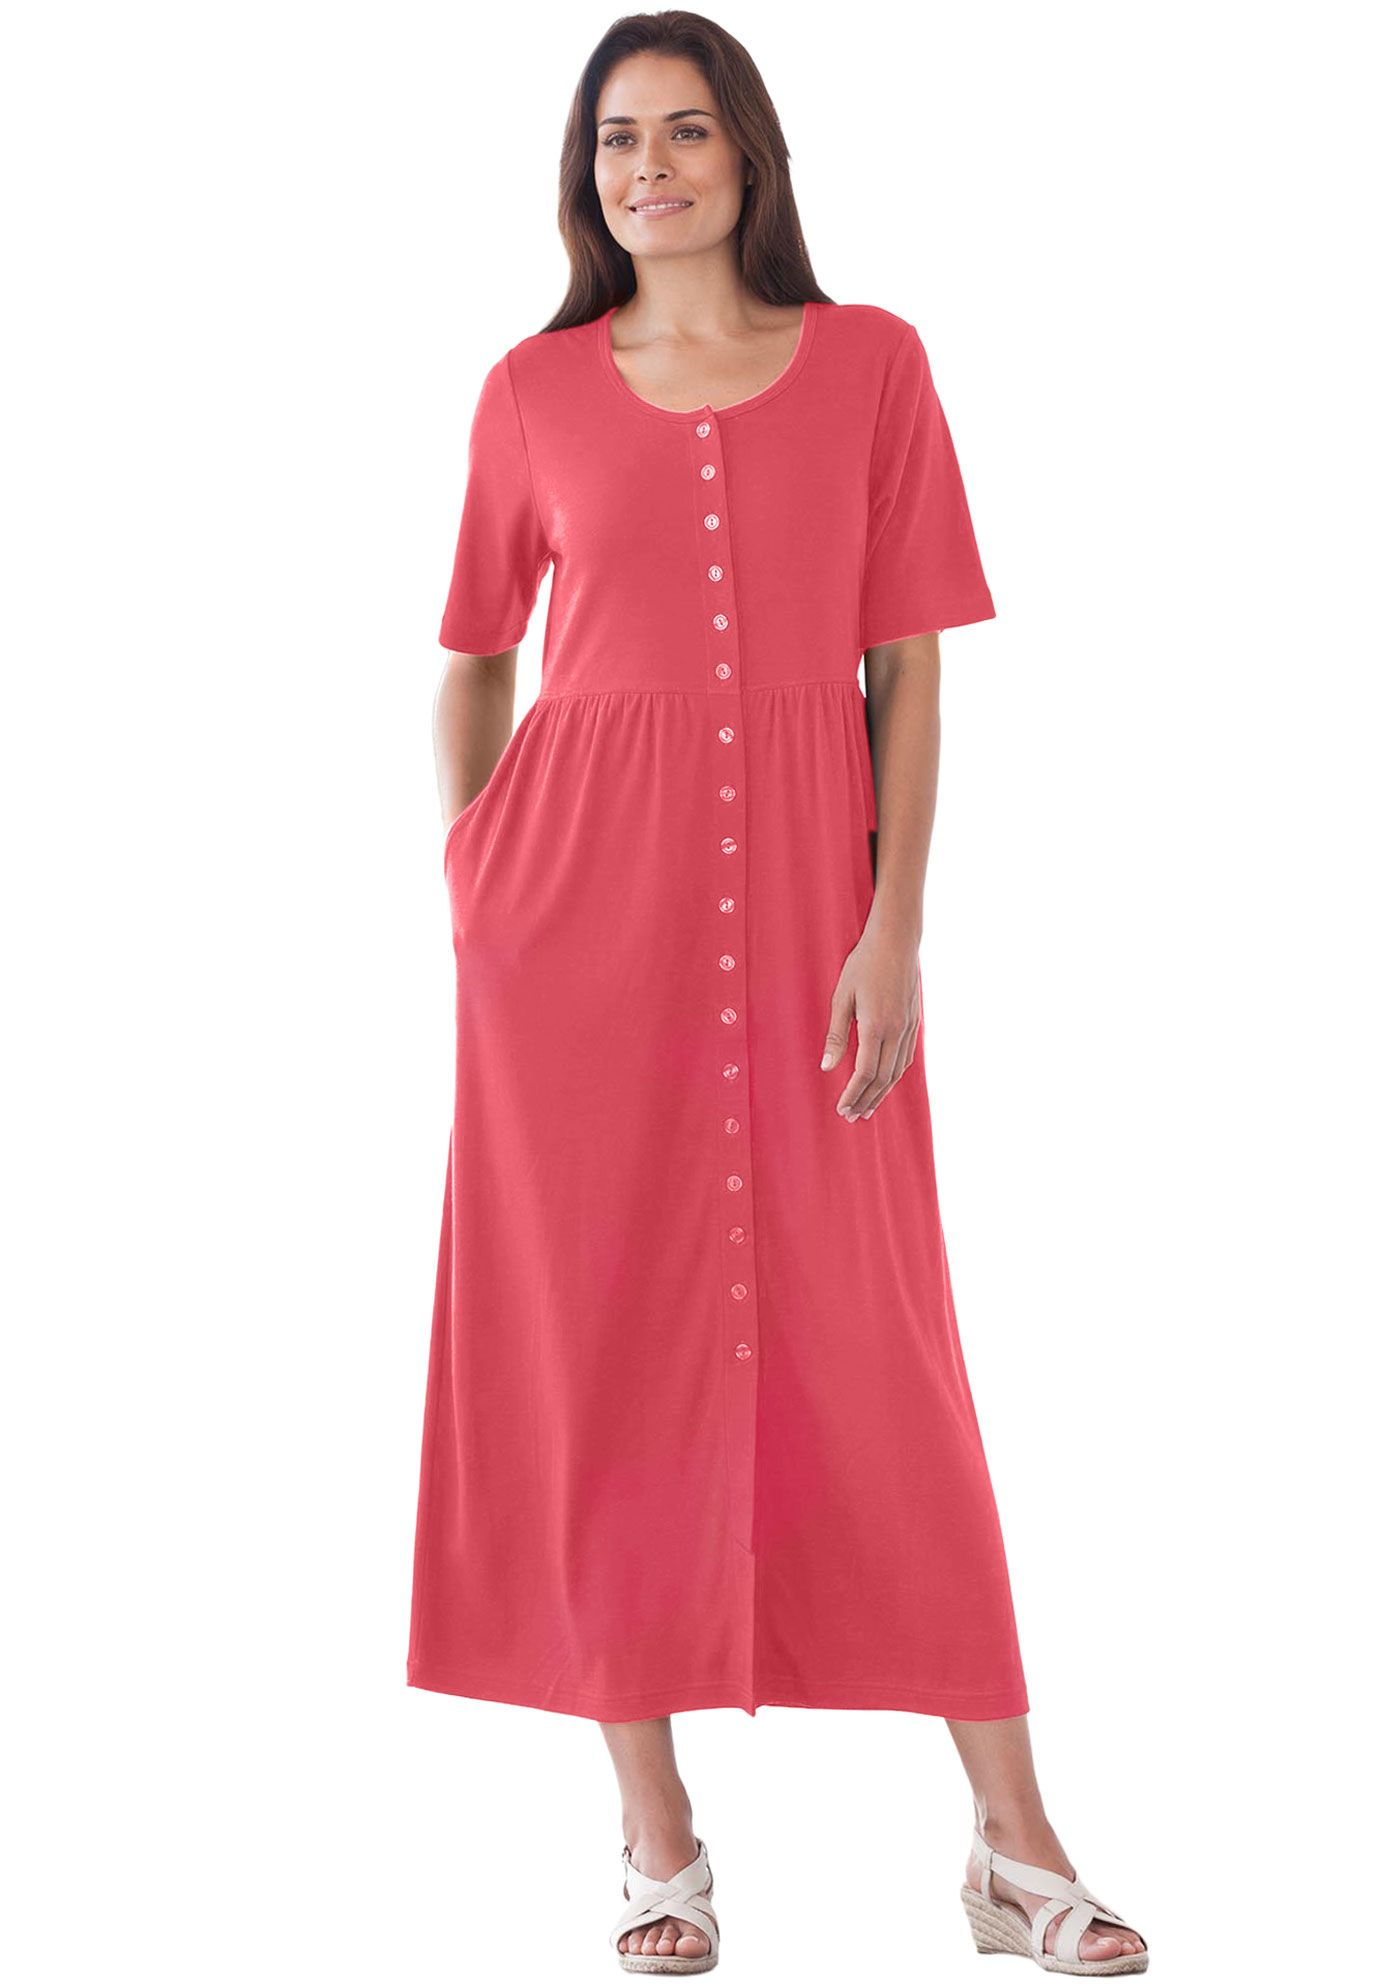 6249b17f1ea Only Necessities Petite dress with button front